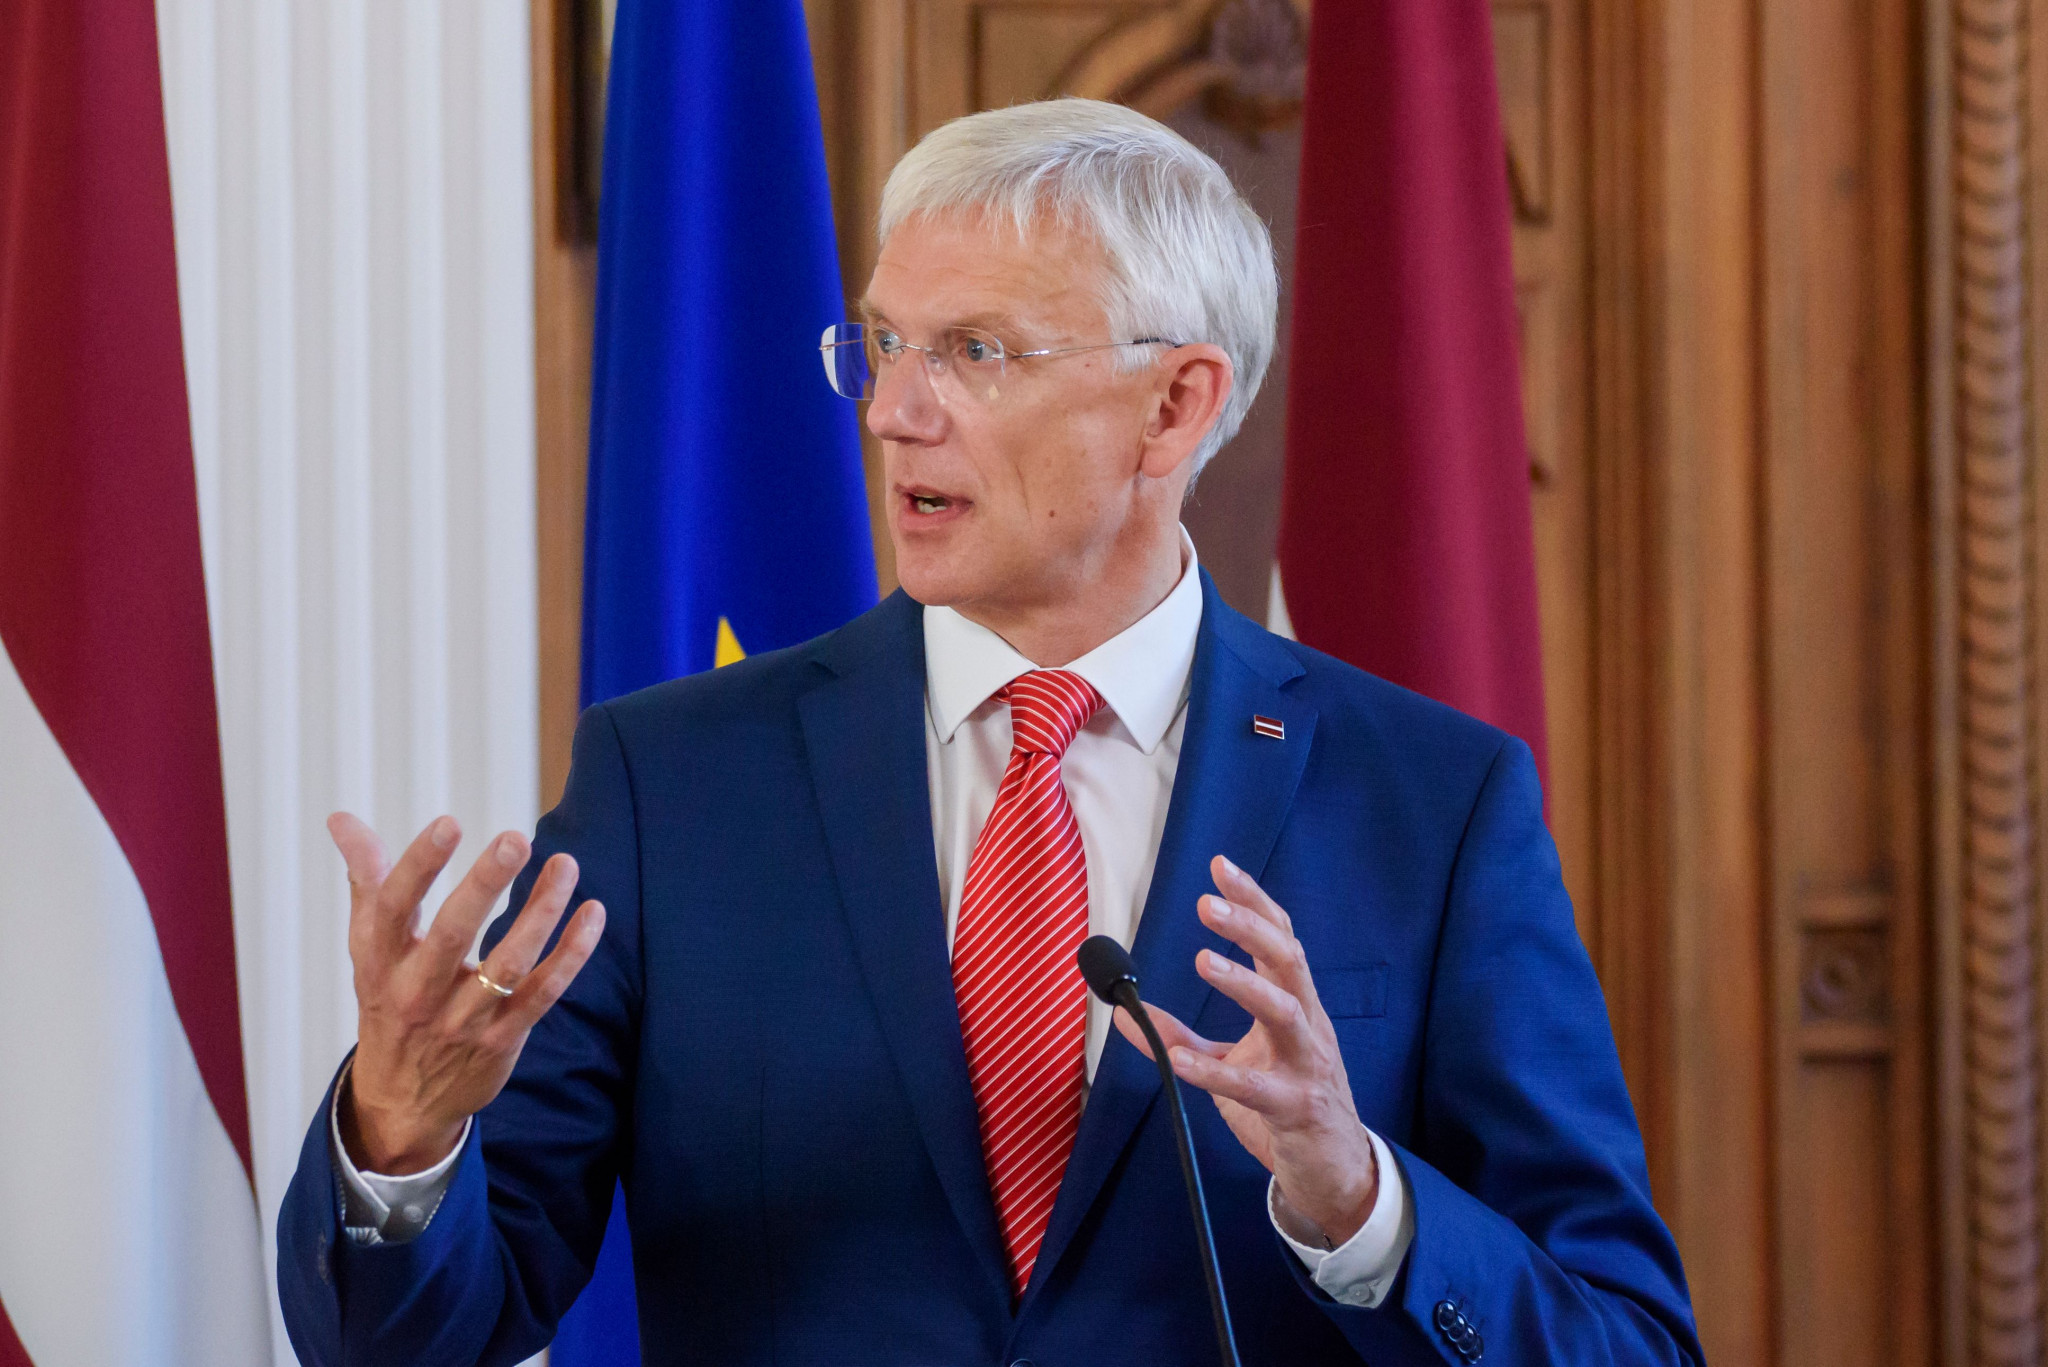 Latvian Prime Minister Krisjanis Karins has warned the country may consider pulling out of co-organising the 2021 IIHF Men's World Championship because of the situation in Belarus ©Getty Images